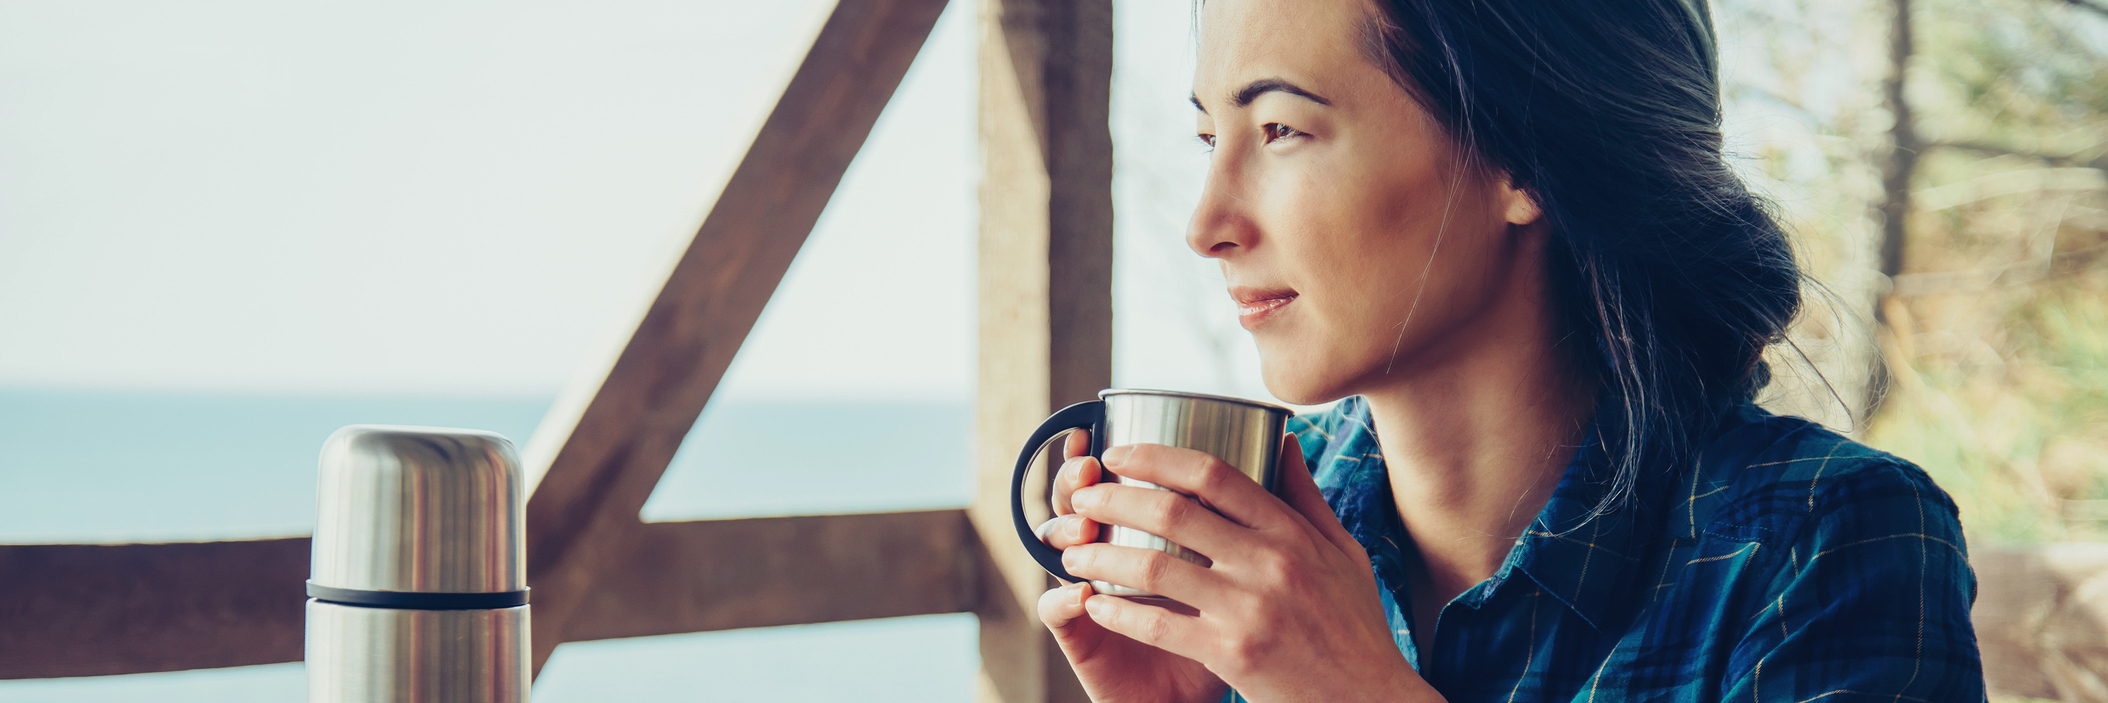 young woman sitting on wooden porch drinking coffee from thermos